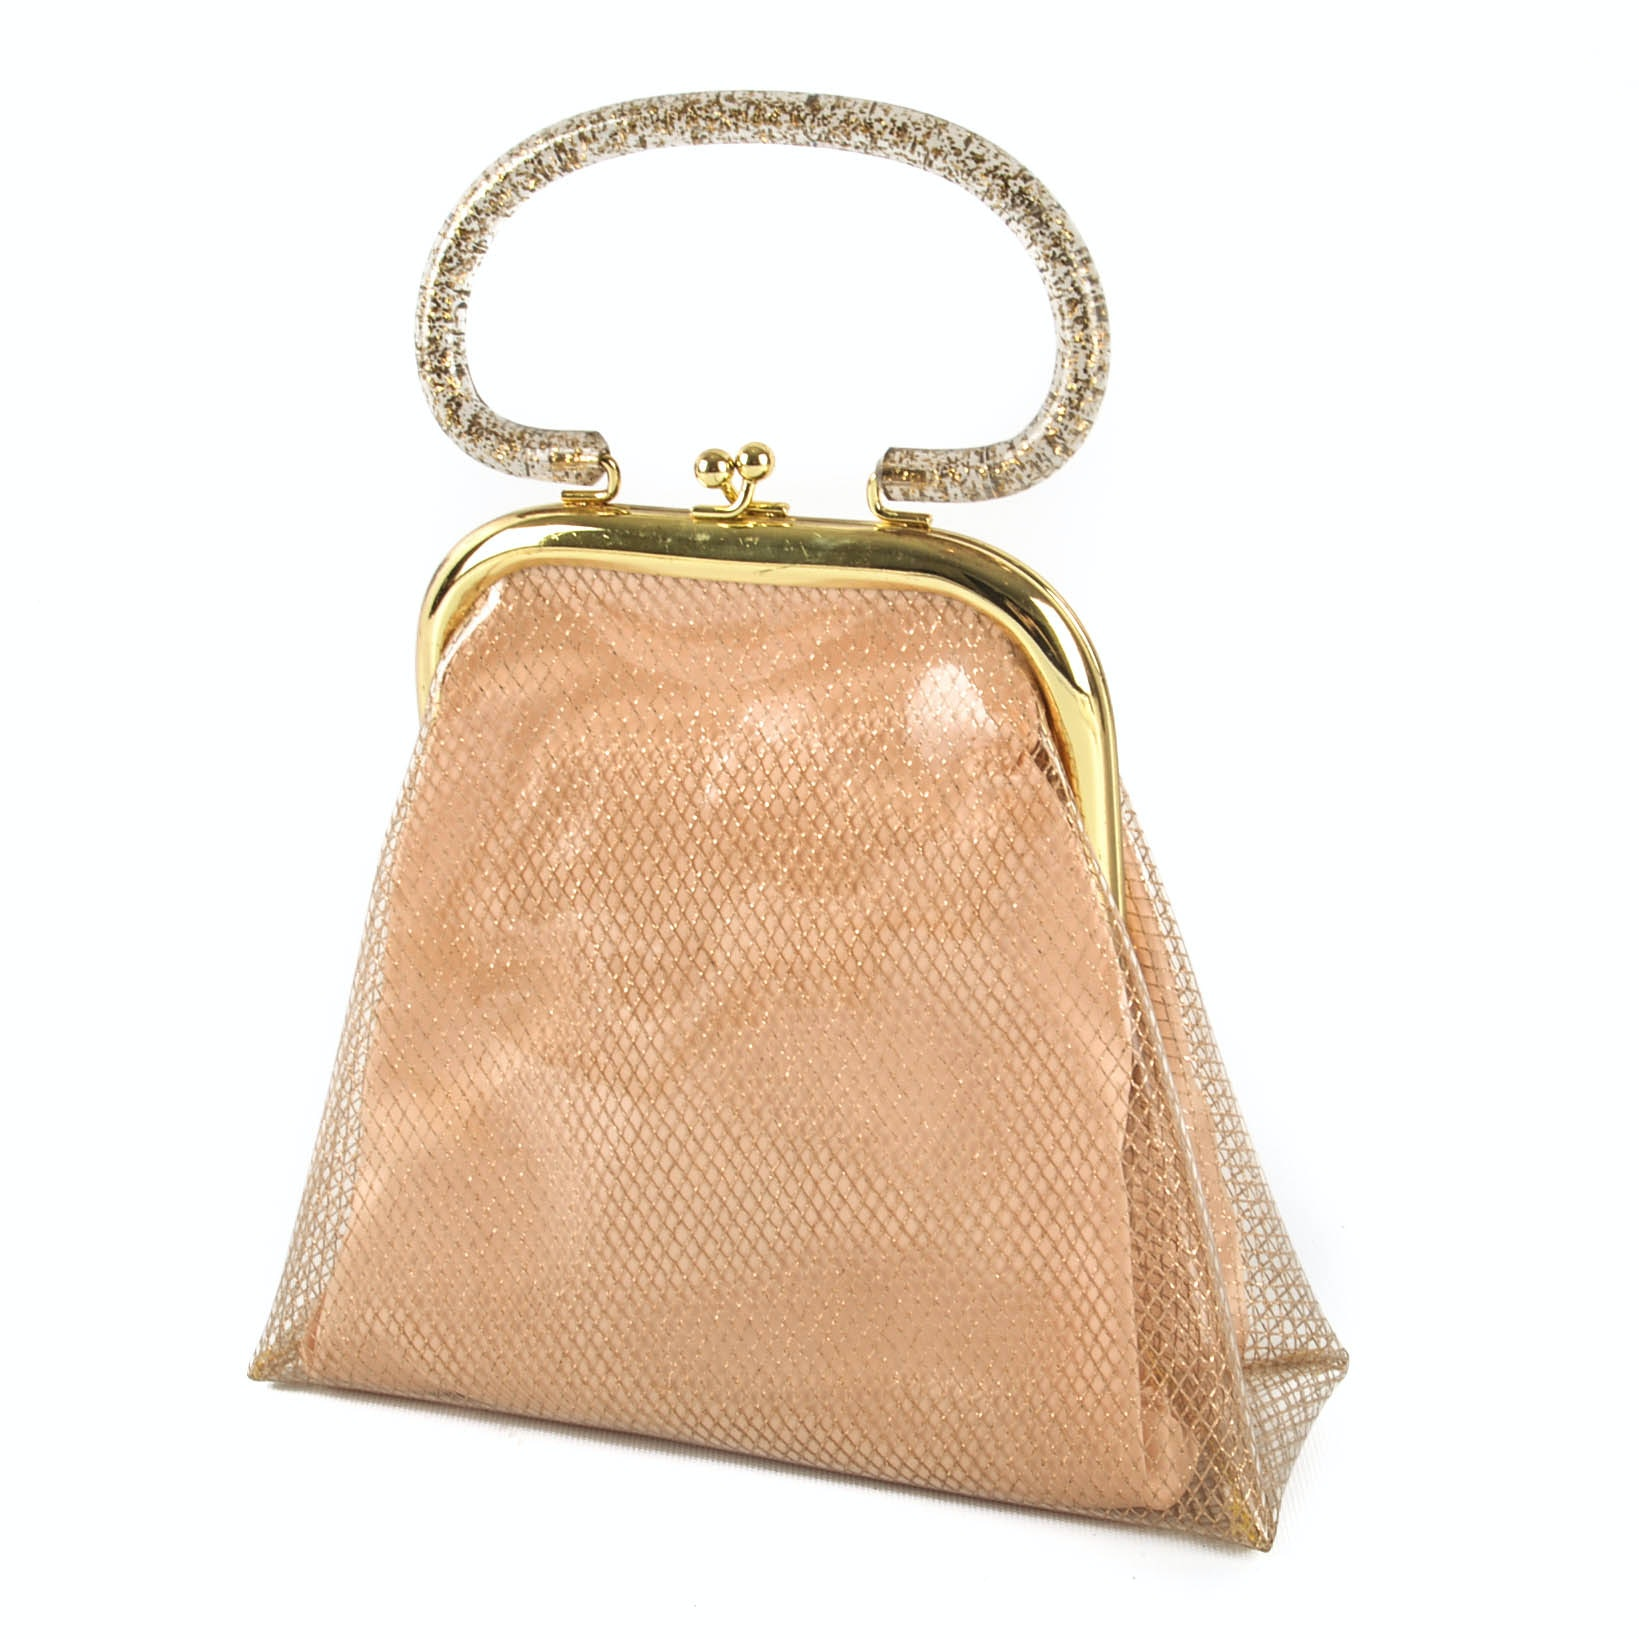 1950s Vinyl and Gold Fishnet Purse With Glittered Acrylic Handle and Accessories